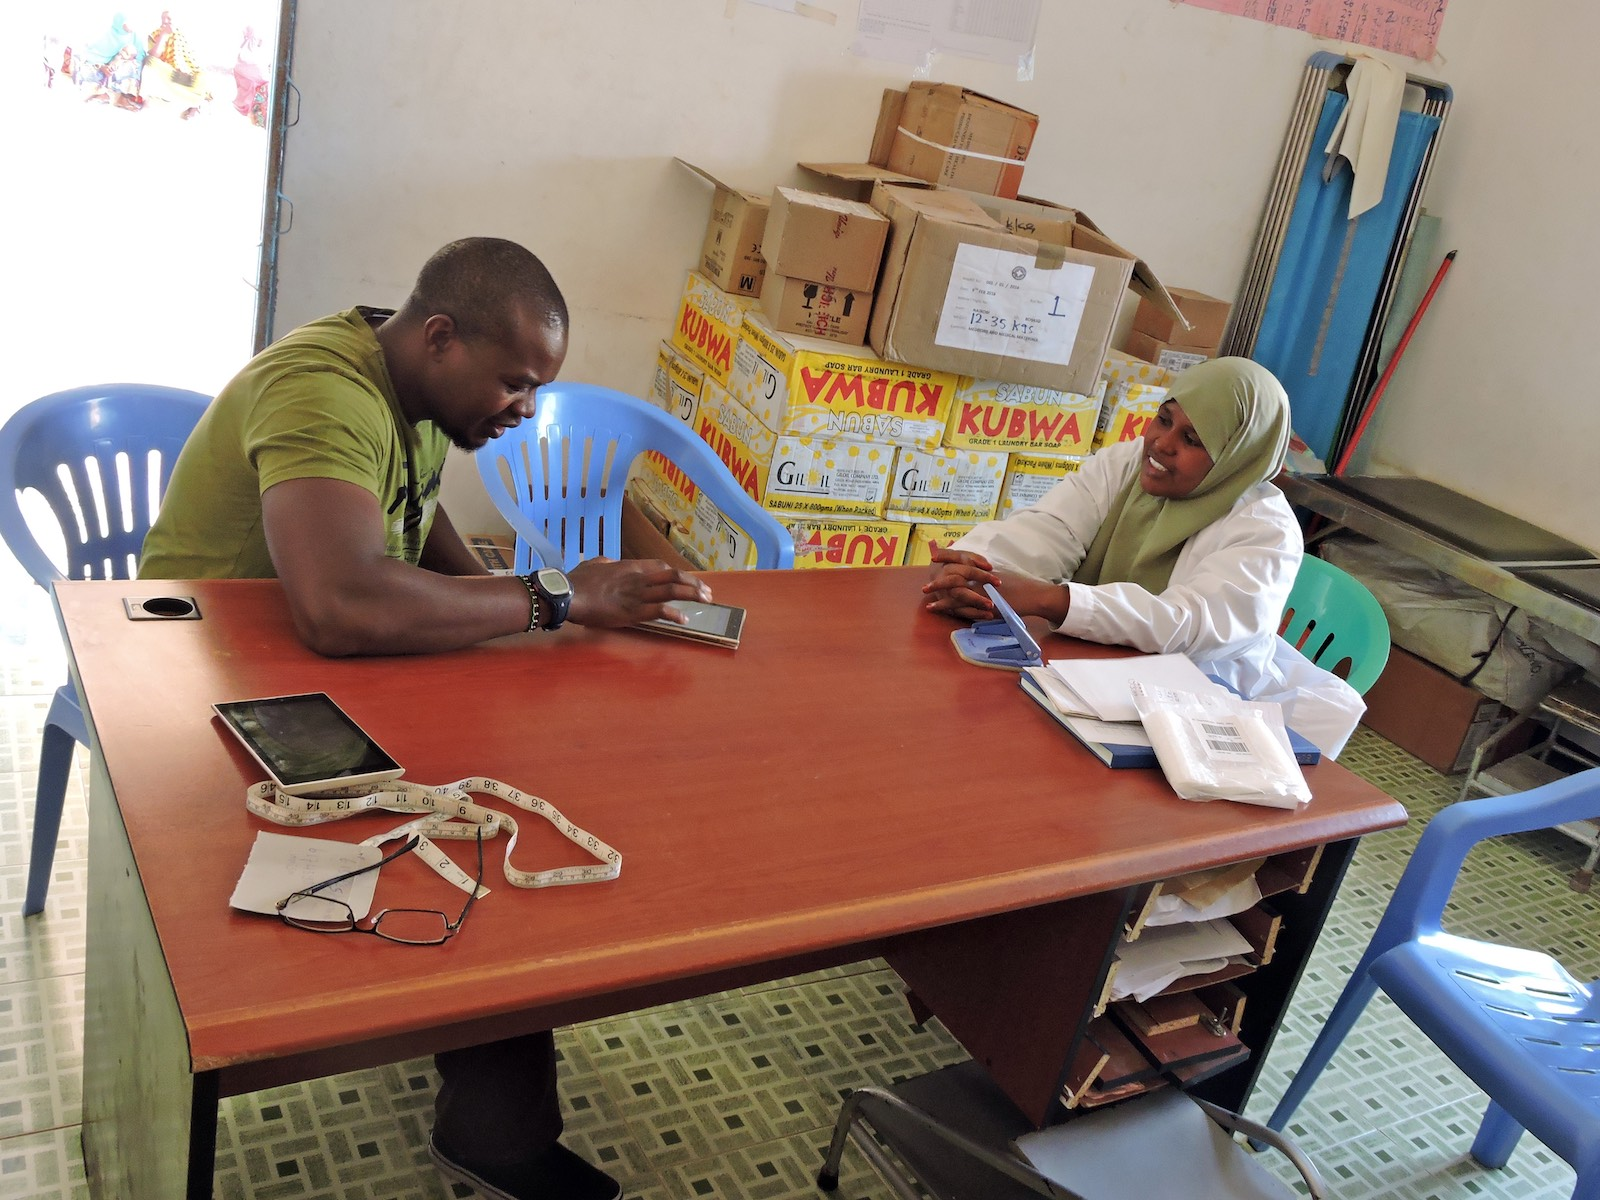 A community health worker conducting an interview and entering research data on a tablet device